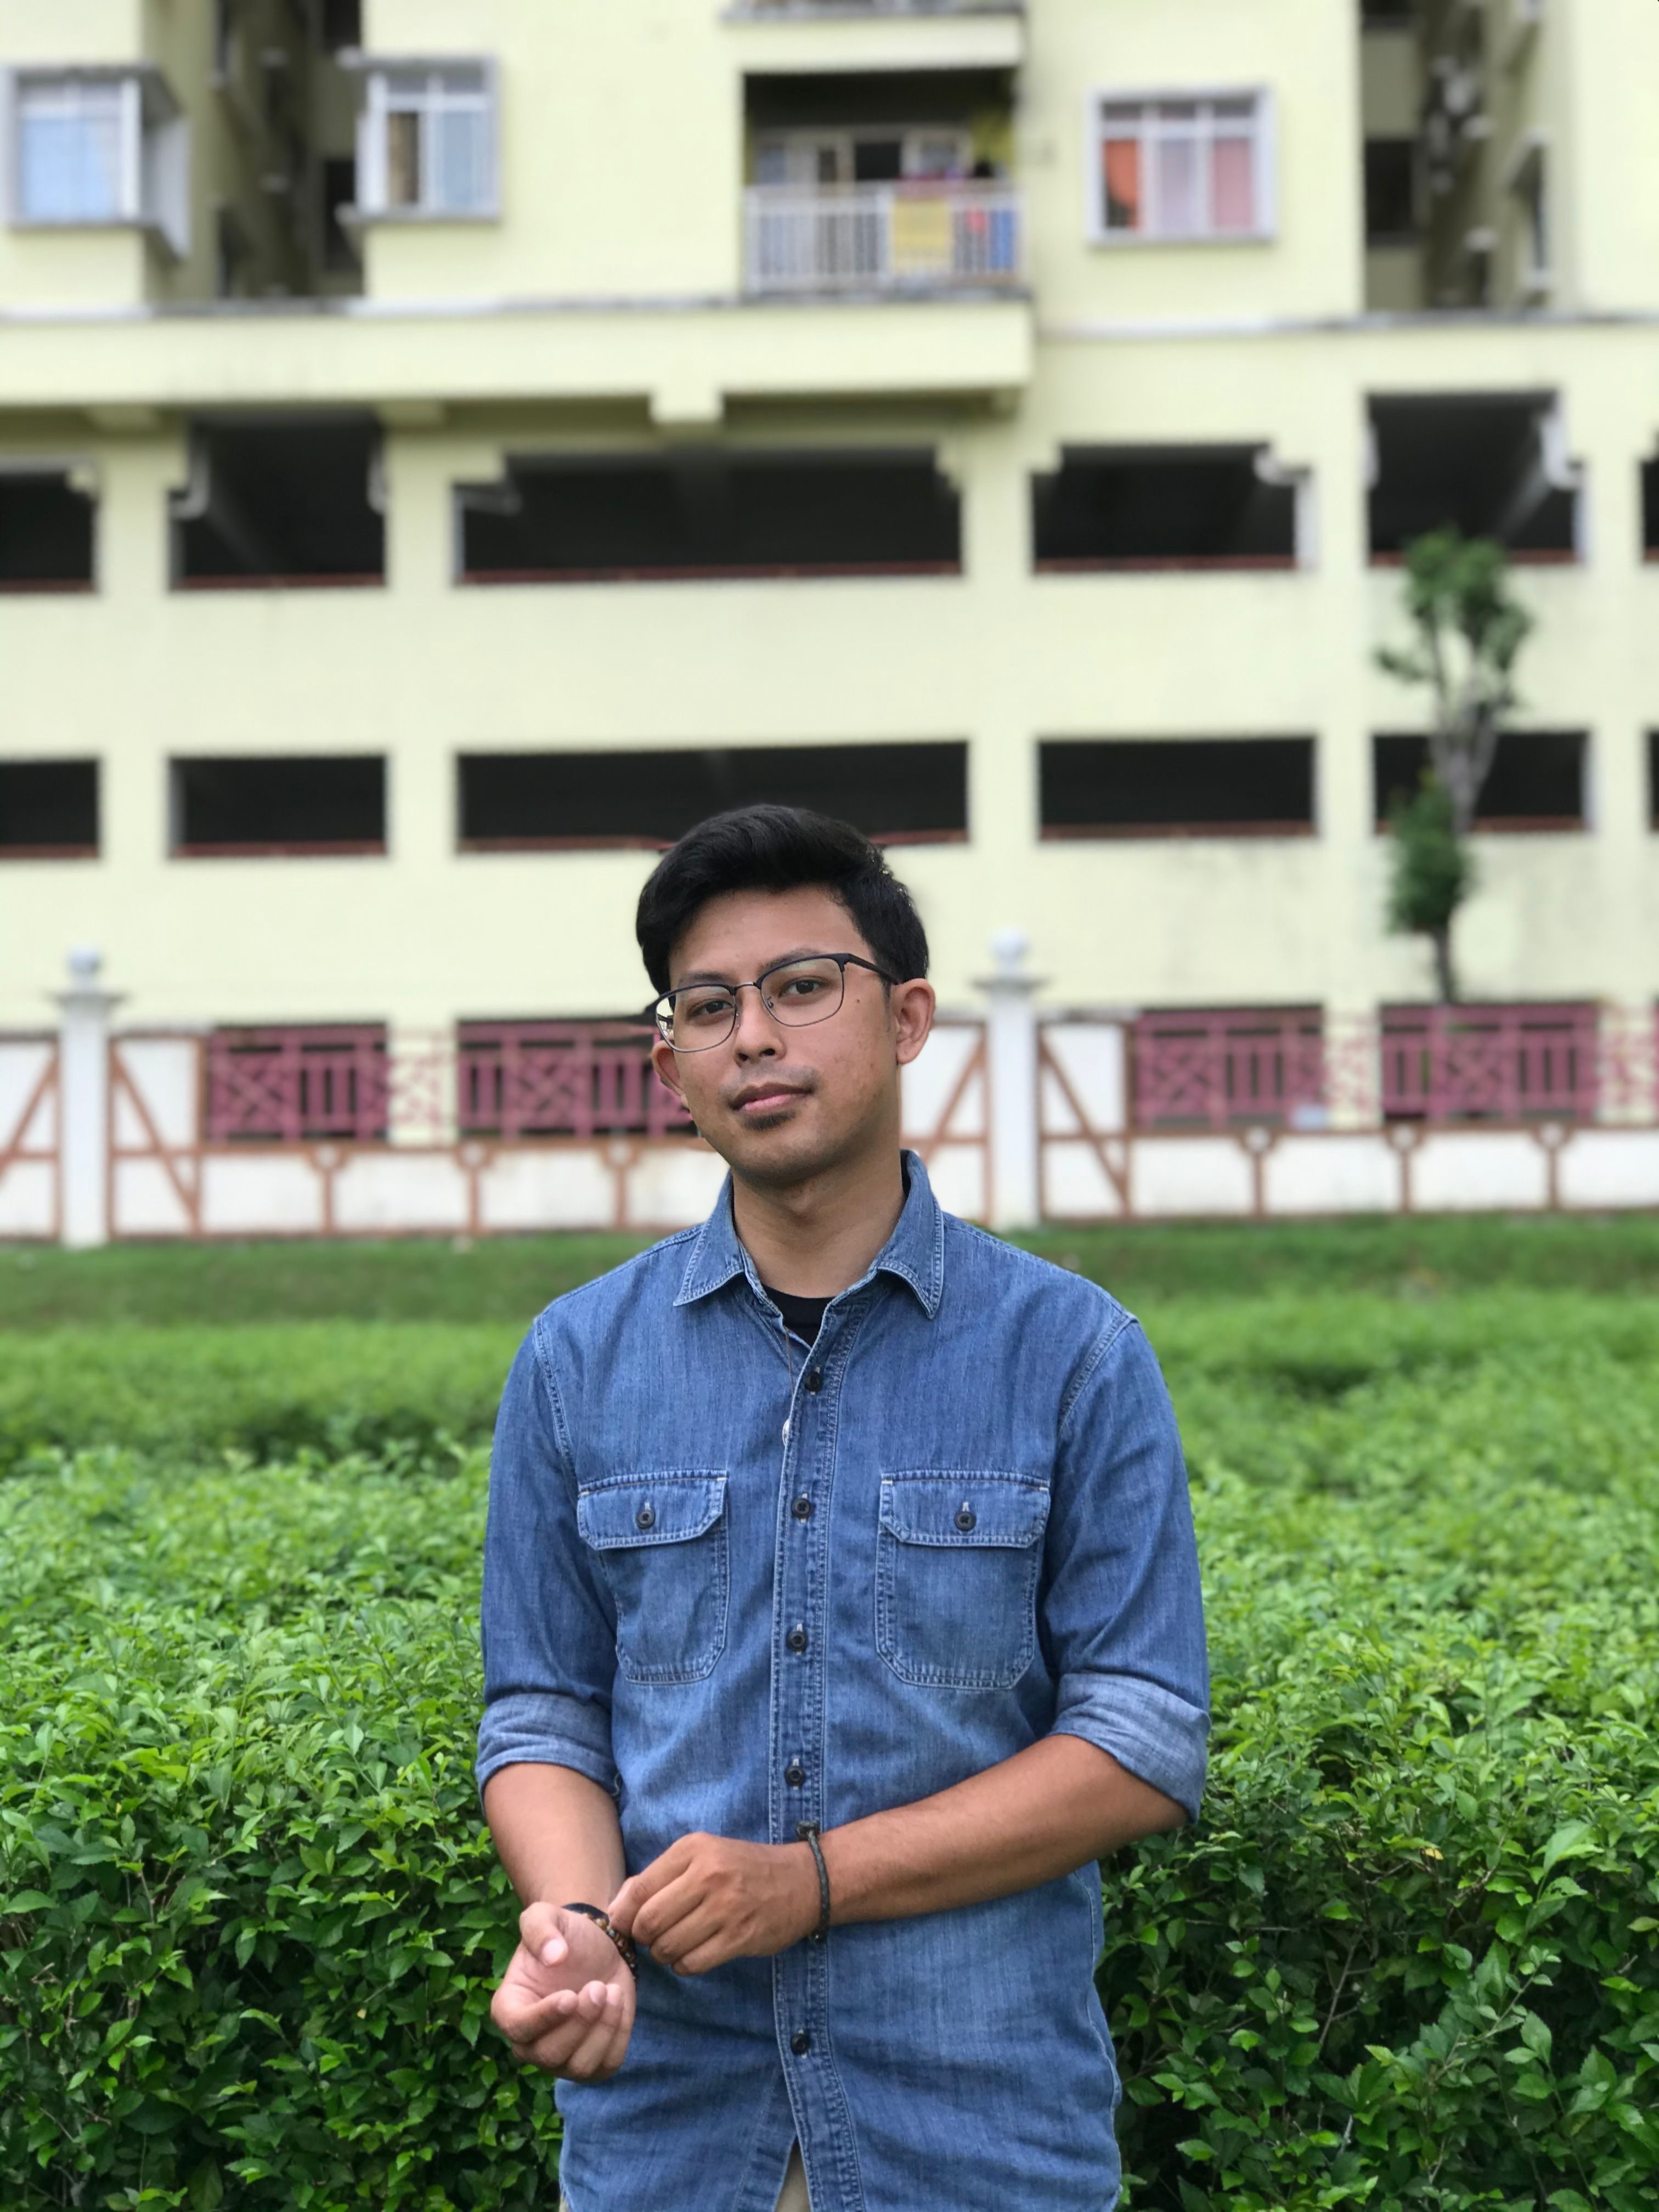 Mohammad Shahirul Azwan Bin Mansor is a young man. He stands in front of some shrubbery, wearing a denim shirt and glasses.